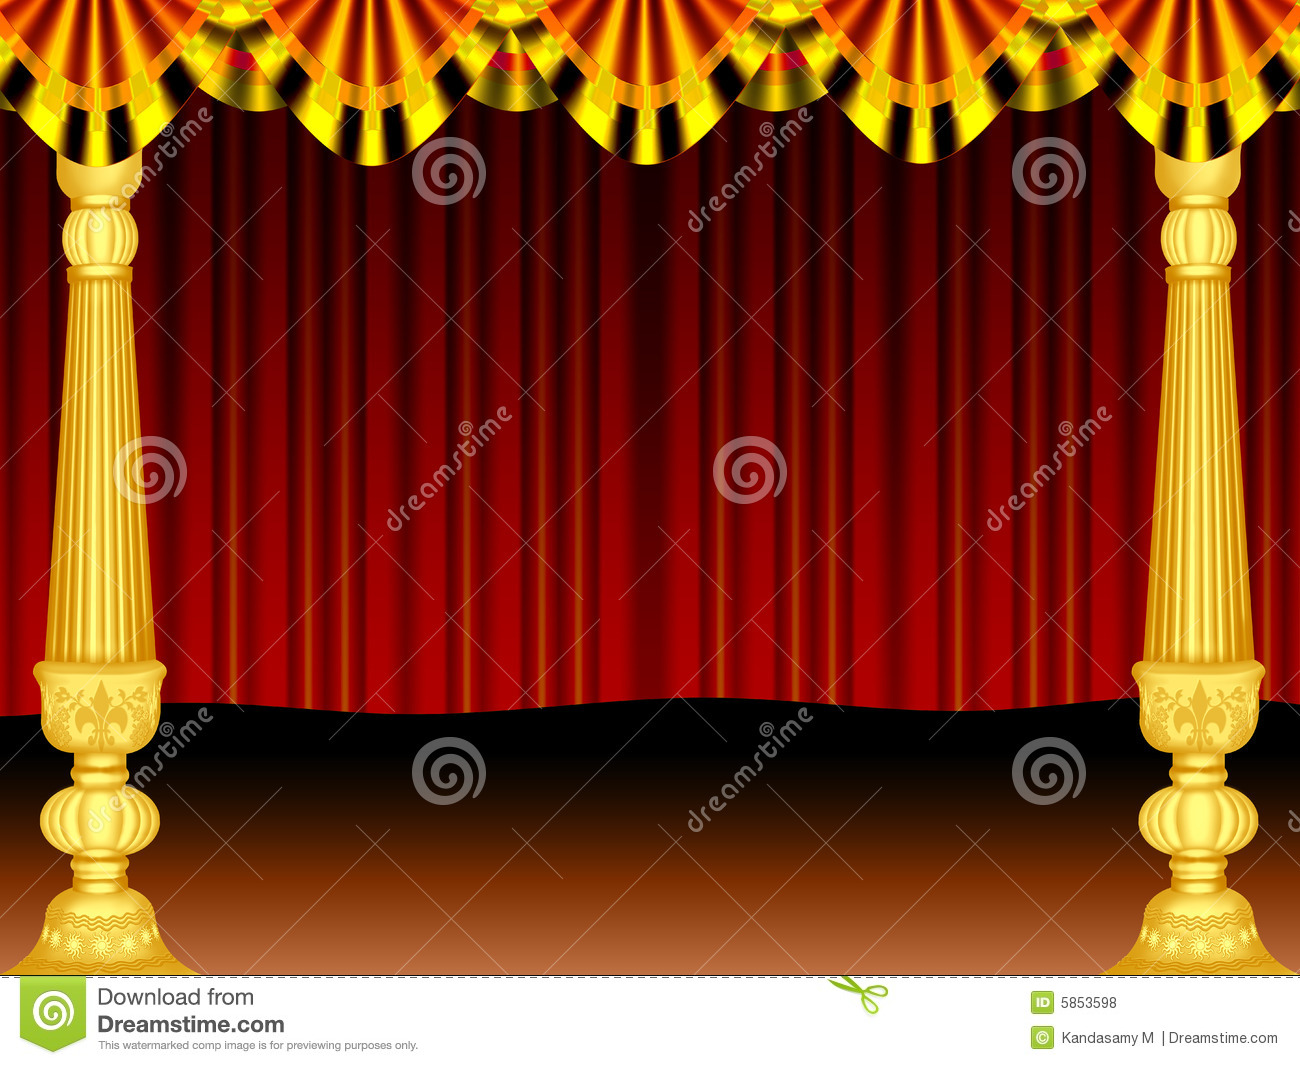 Gold stage curtains - Stage Curtain Border Viewing Gallery